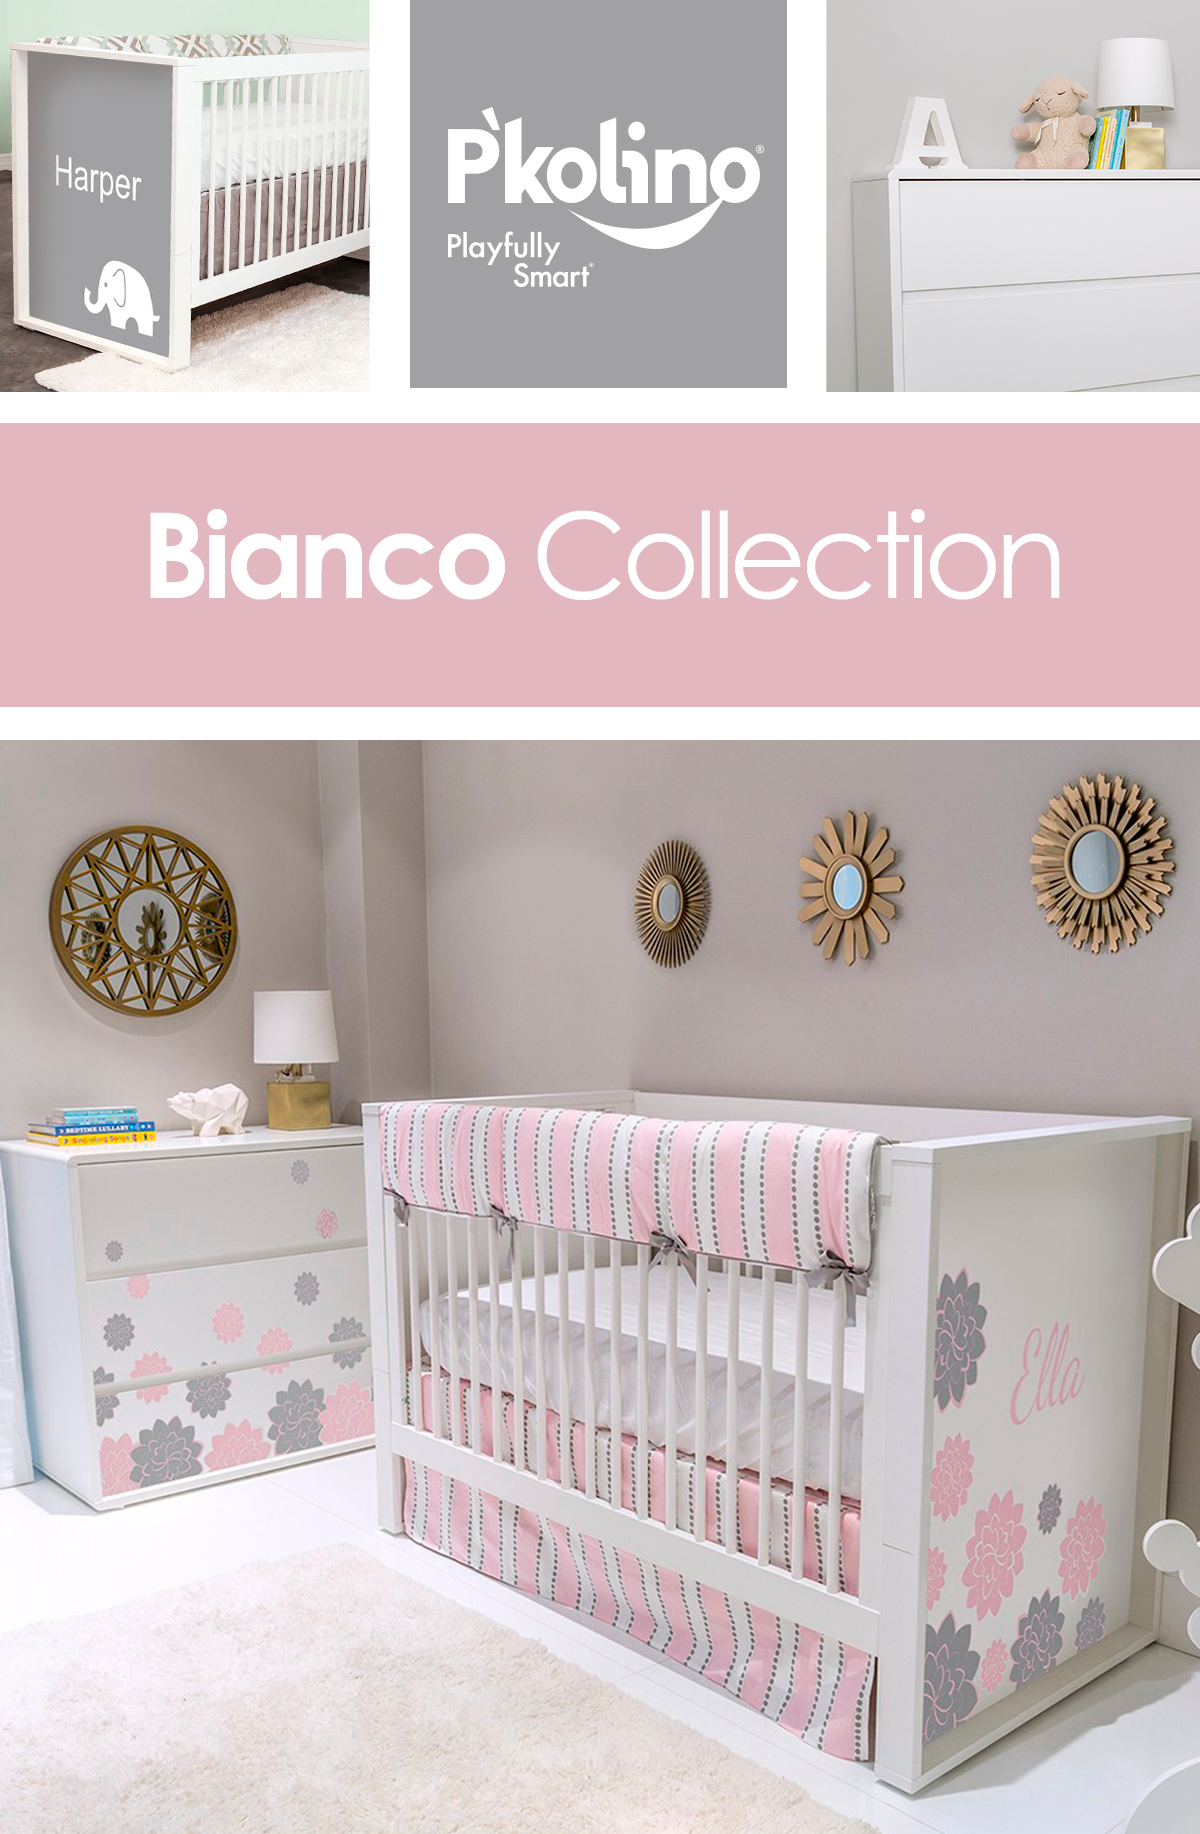 Check Out The Bianco Collection From P Kolino S Nursery Line Liapela